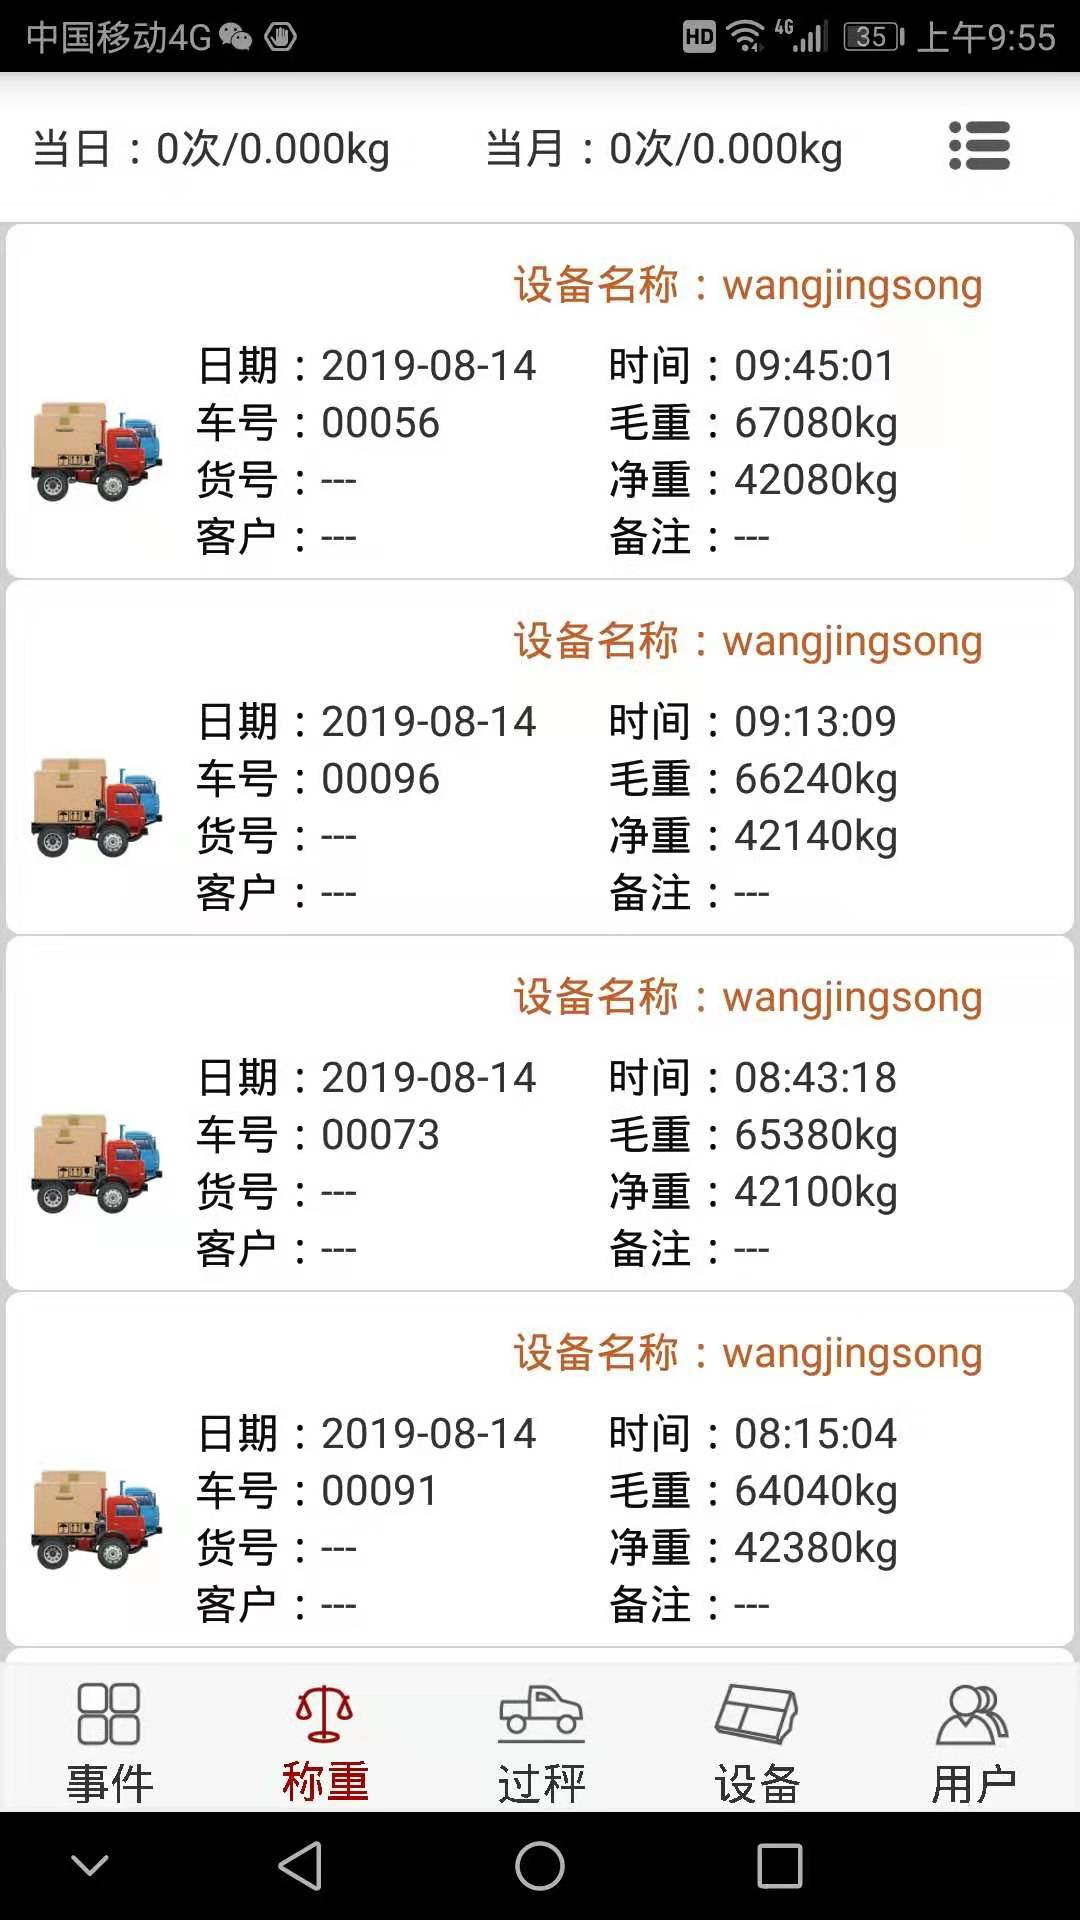 <strong><strong><strong>带GPRS数据传输汽车地磅手机可查称重数据</strong></strong></strong>